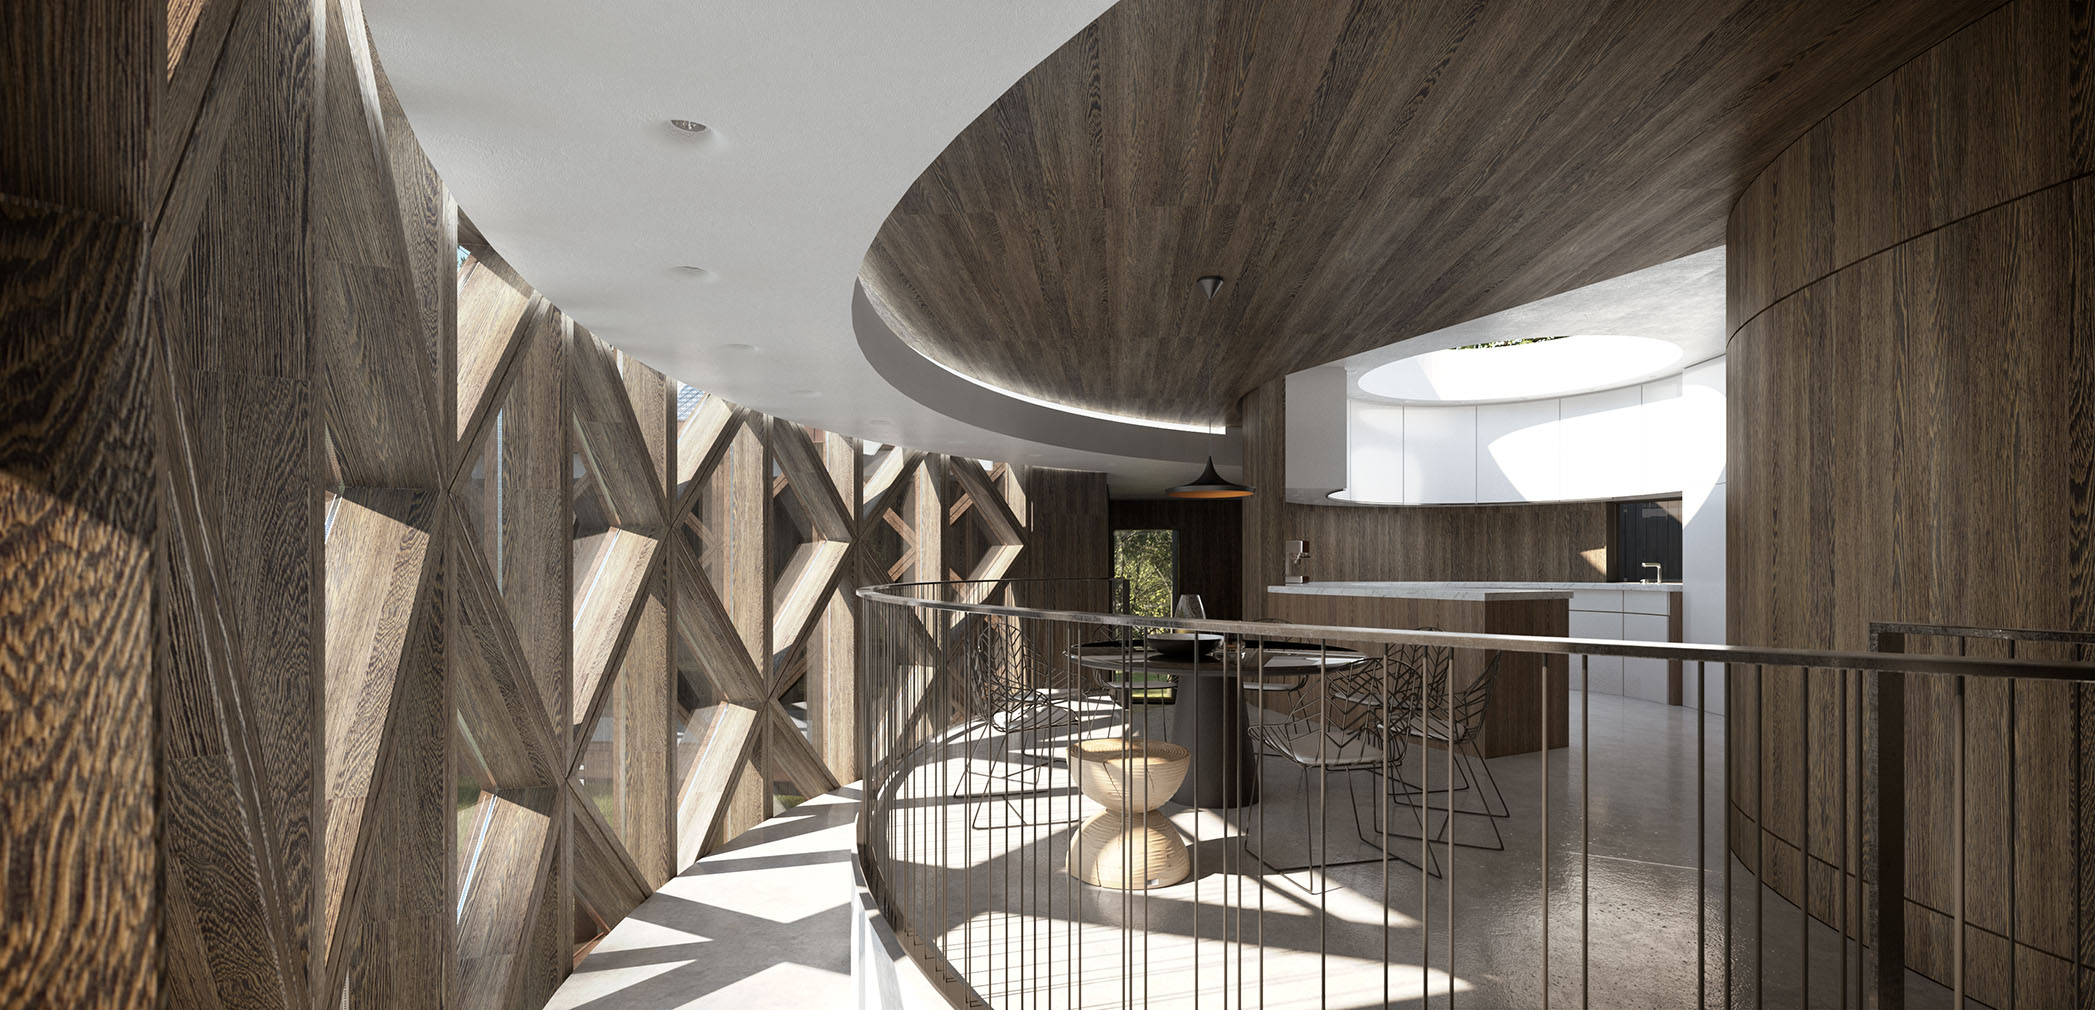 Interior render of unbuilt treehouse home with planning permission hits the market in Ewes, Gloucestershire